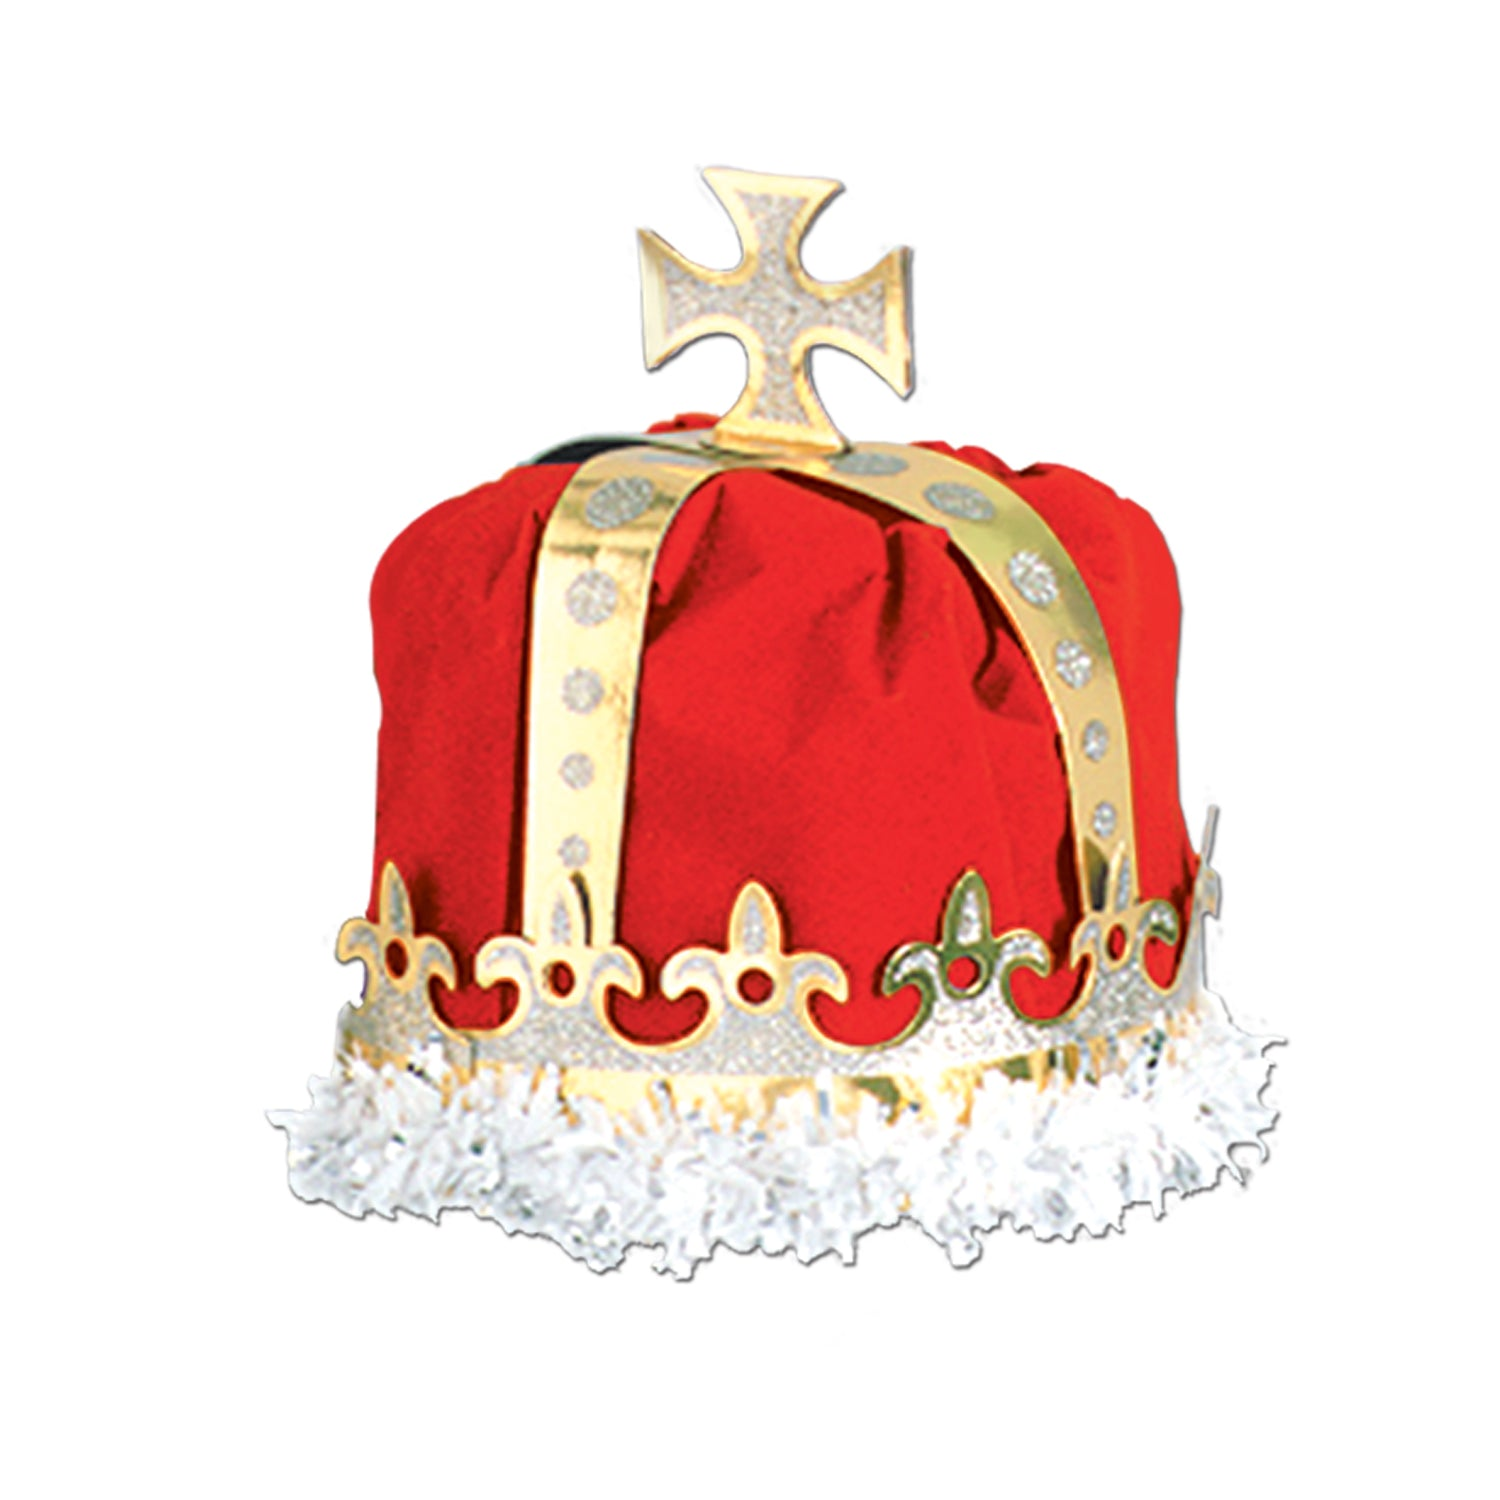 Royal King's Crown, red; velvet-textured by Beistle - Mardi Gras Theme Decorations